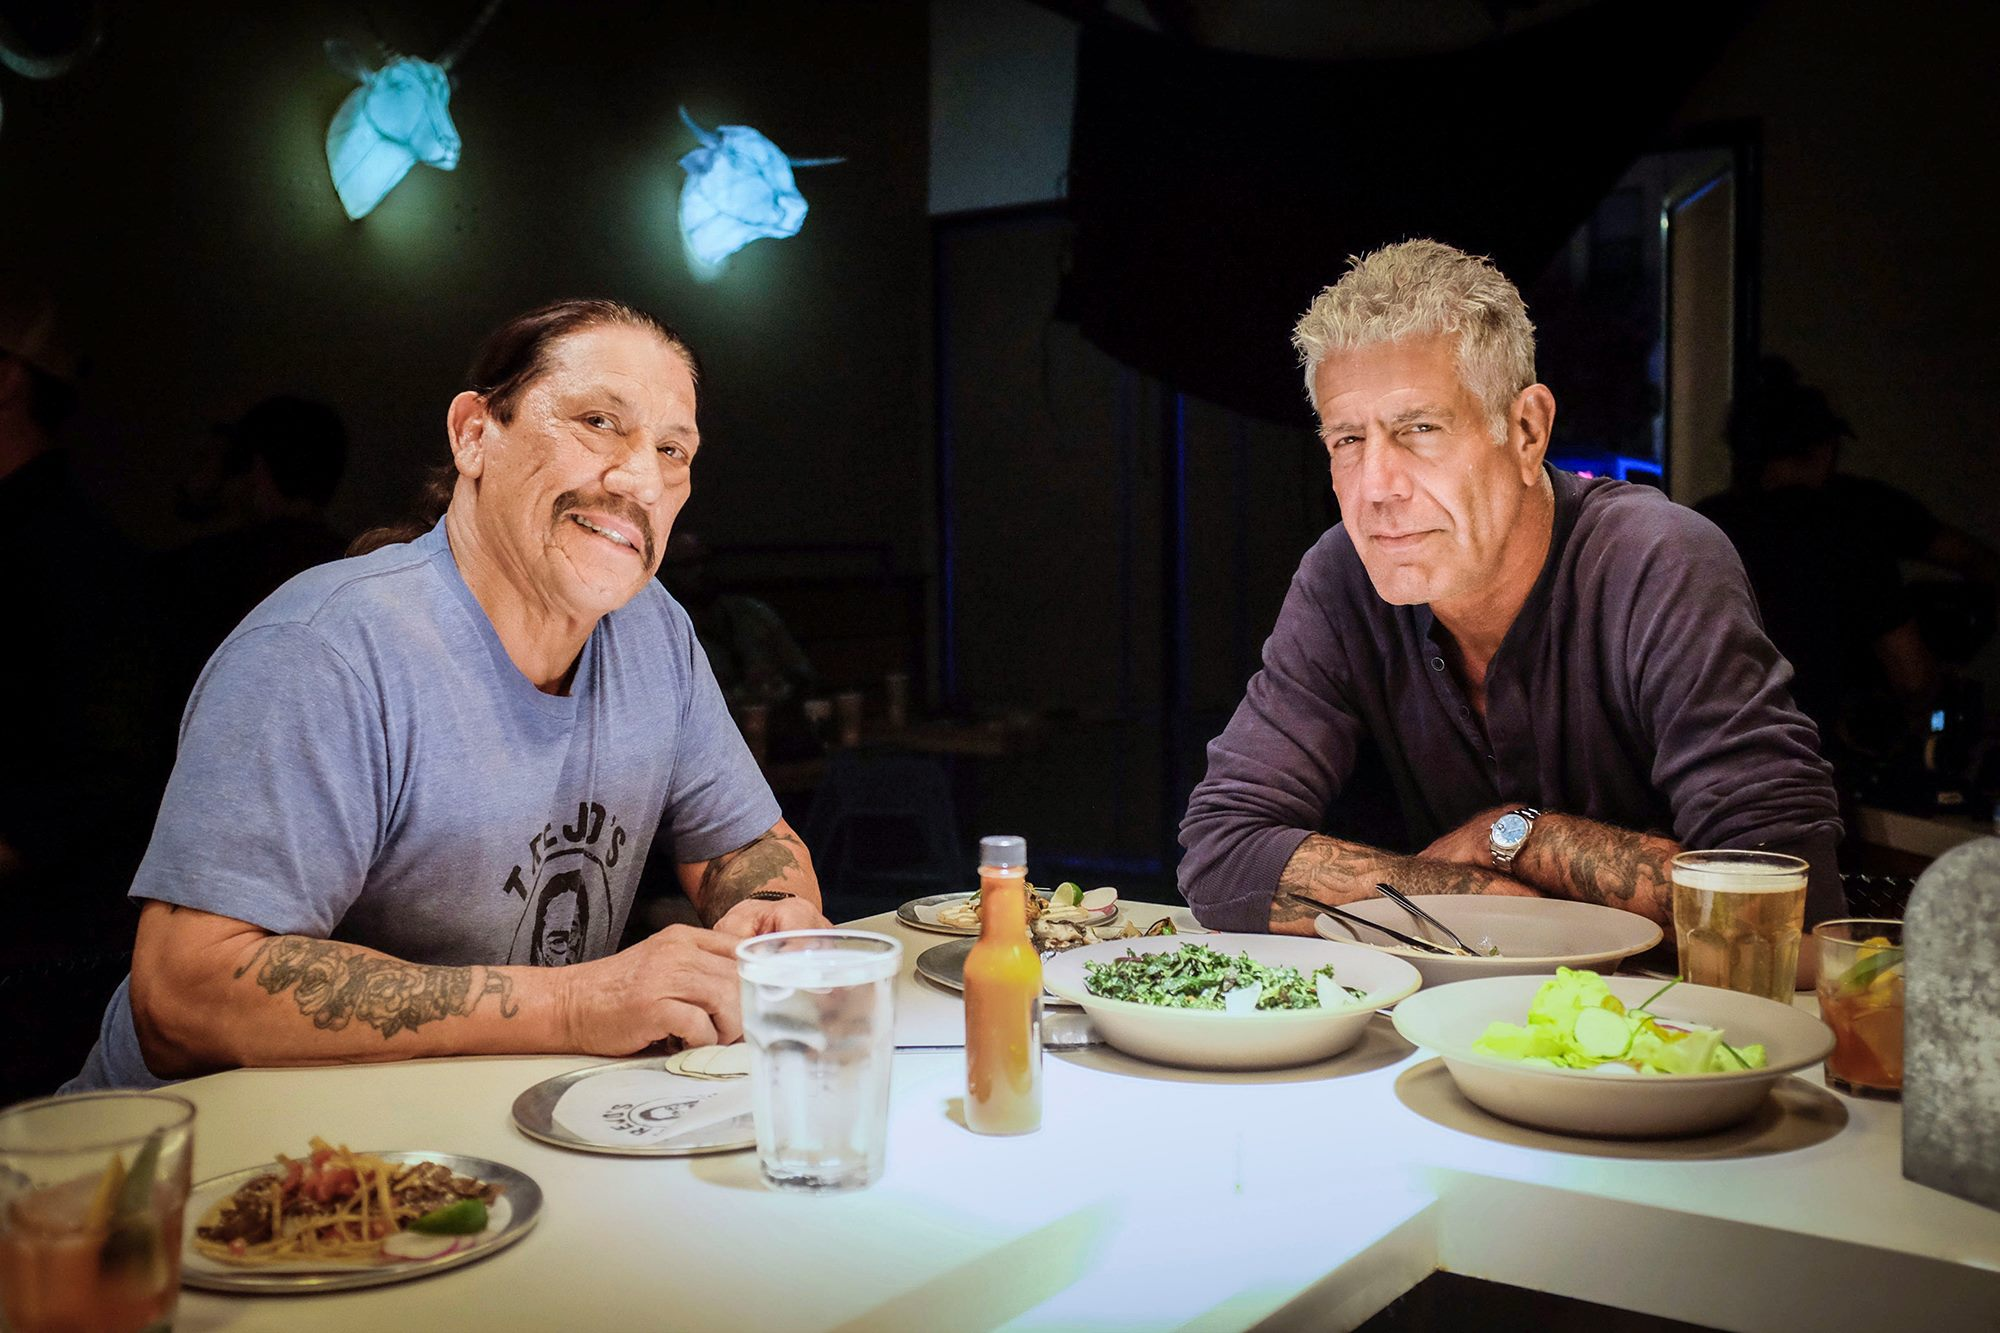 Anthony Bourdain's 'Parts Unknown' Takes a Deep Look at Los Angeles' Mexican Food Scene